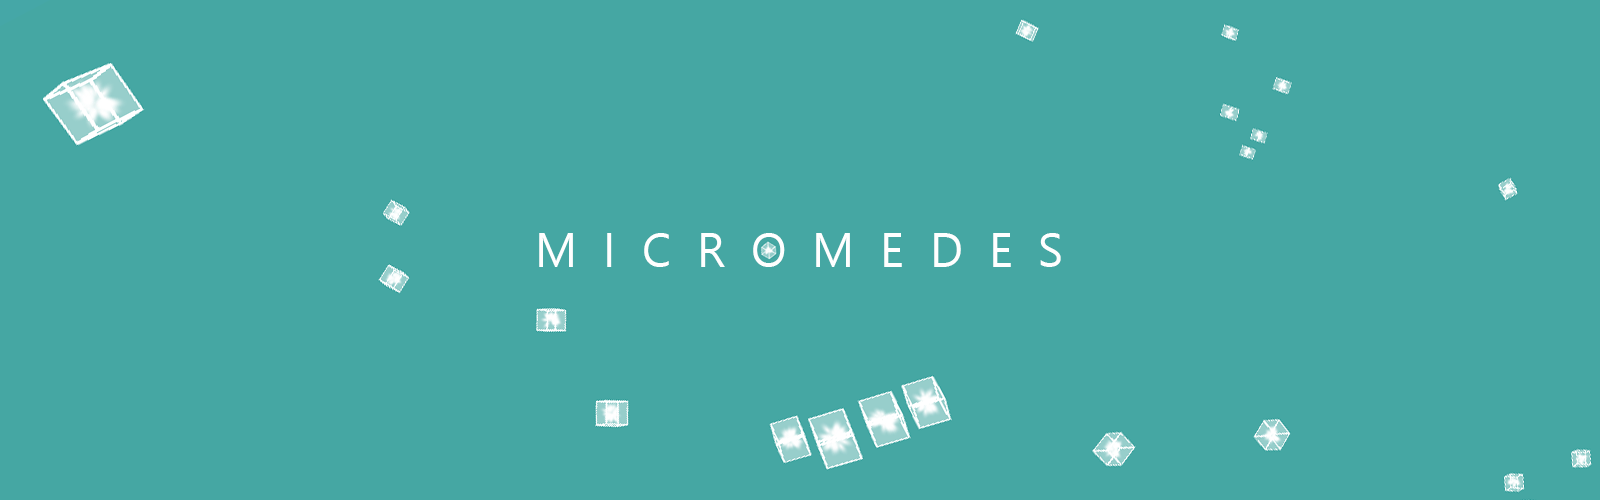 Micromedes